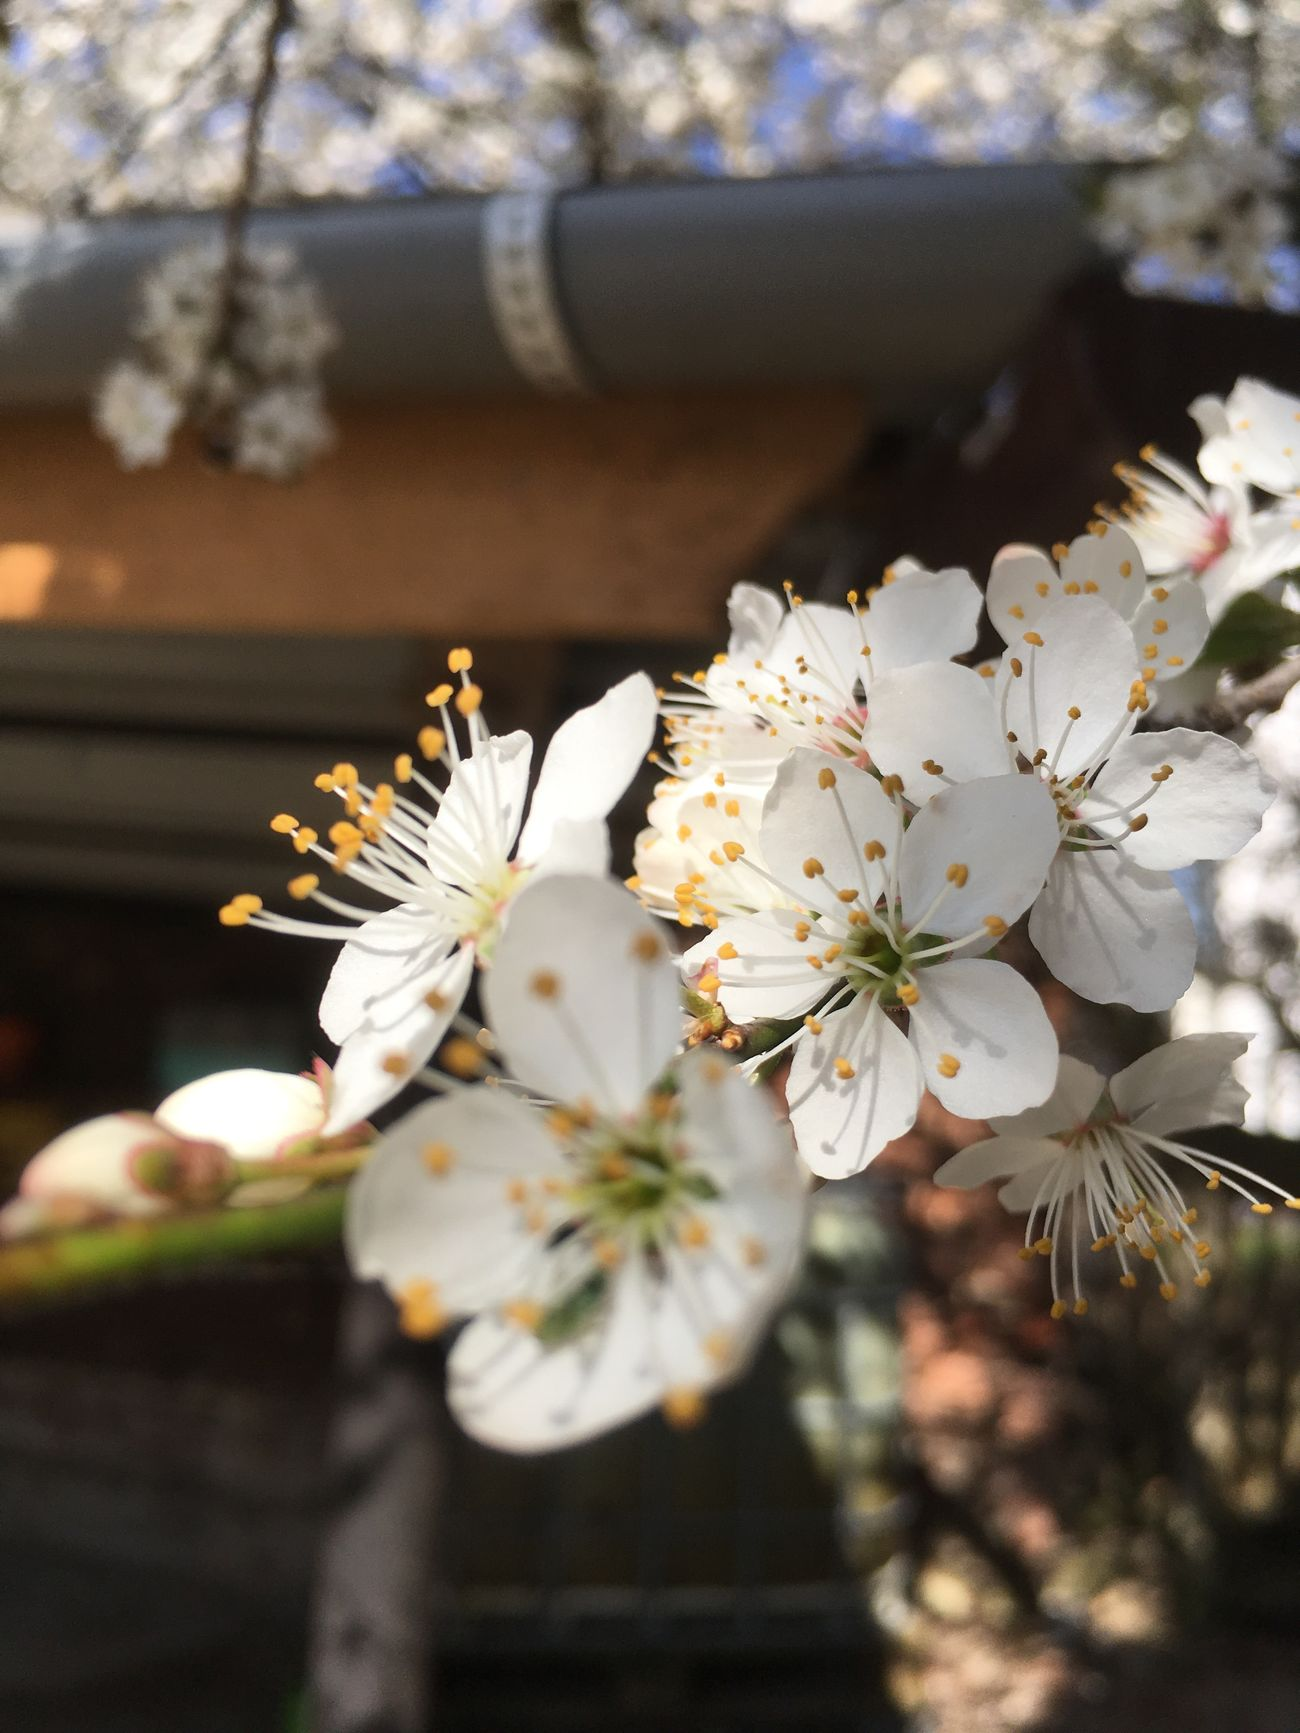 Flower White Color Fragility Nature Growth Blossom Beauty In Nature Freshness Petal Springtime In Bloom Tree Apple Blossom Flower Head Apple Tree Fruit Tree Close-up Focus On Foreground Twig Stamen